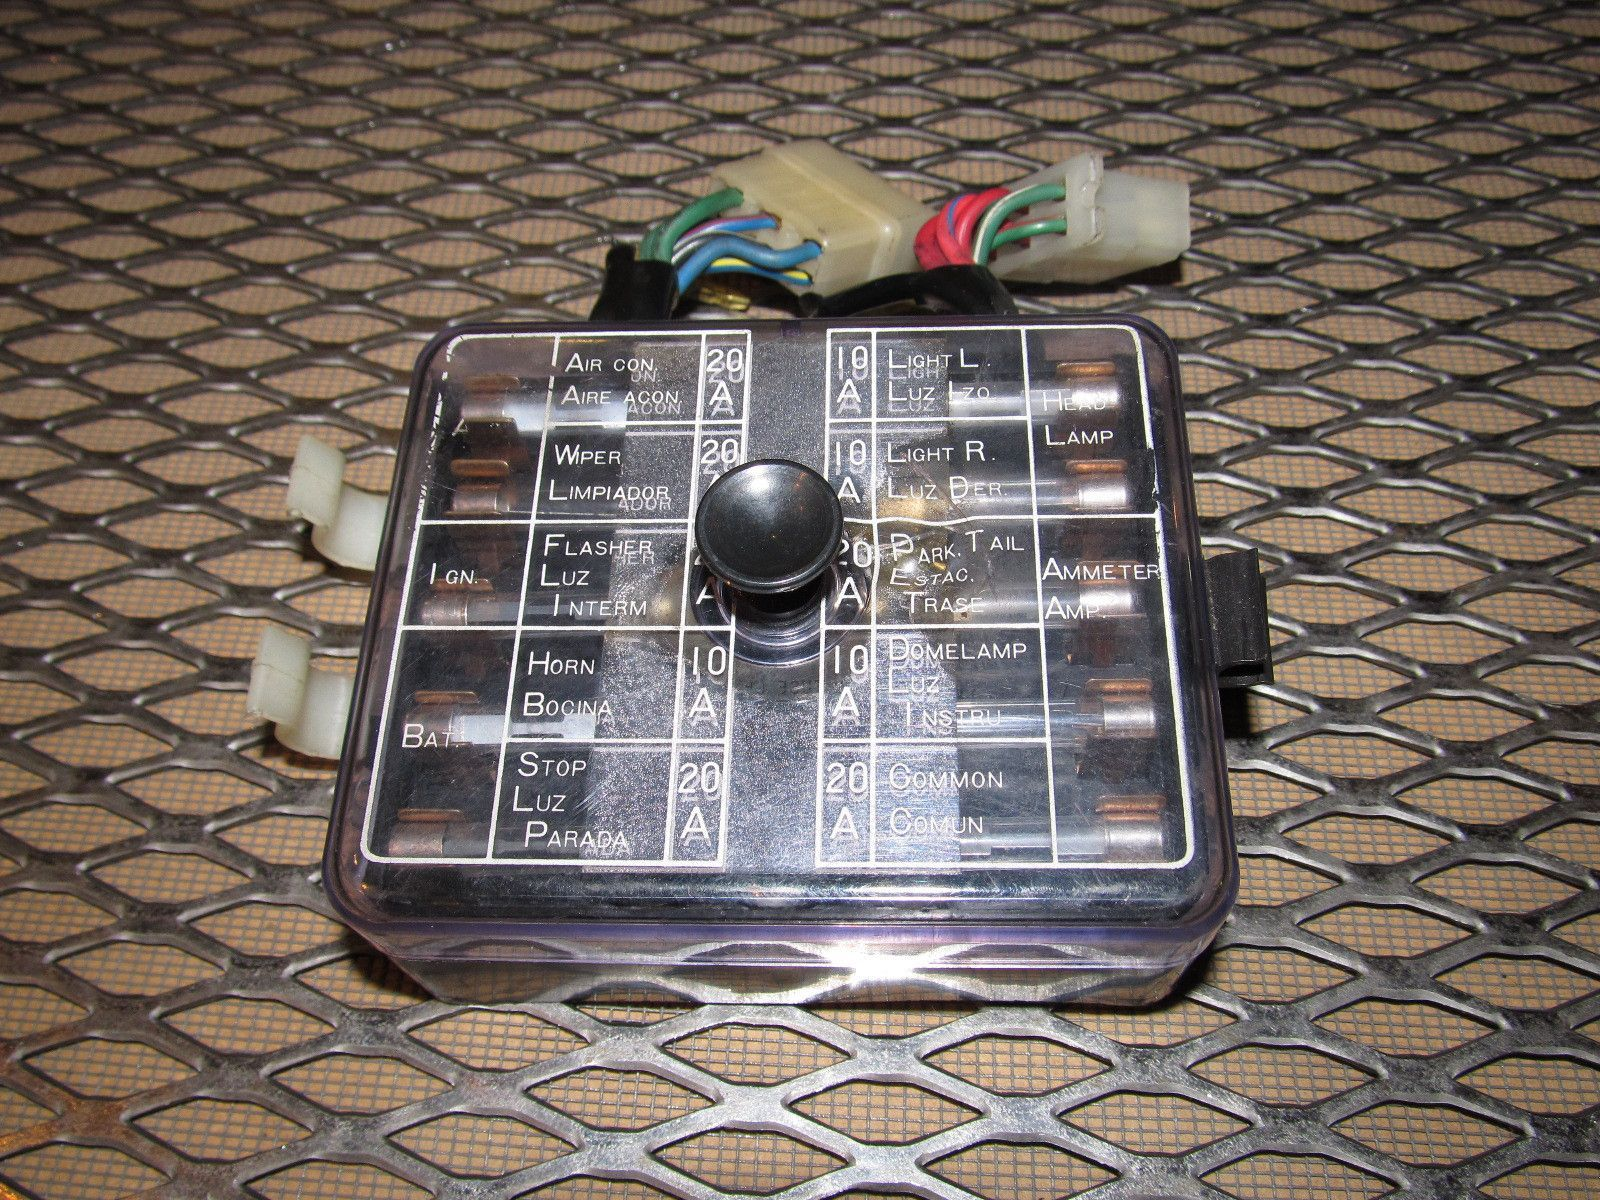 240z Fuse Box Explained Wiring Diagrams Melted 72 73 Datsun Oem Interior Products Pinterest Melting